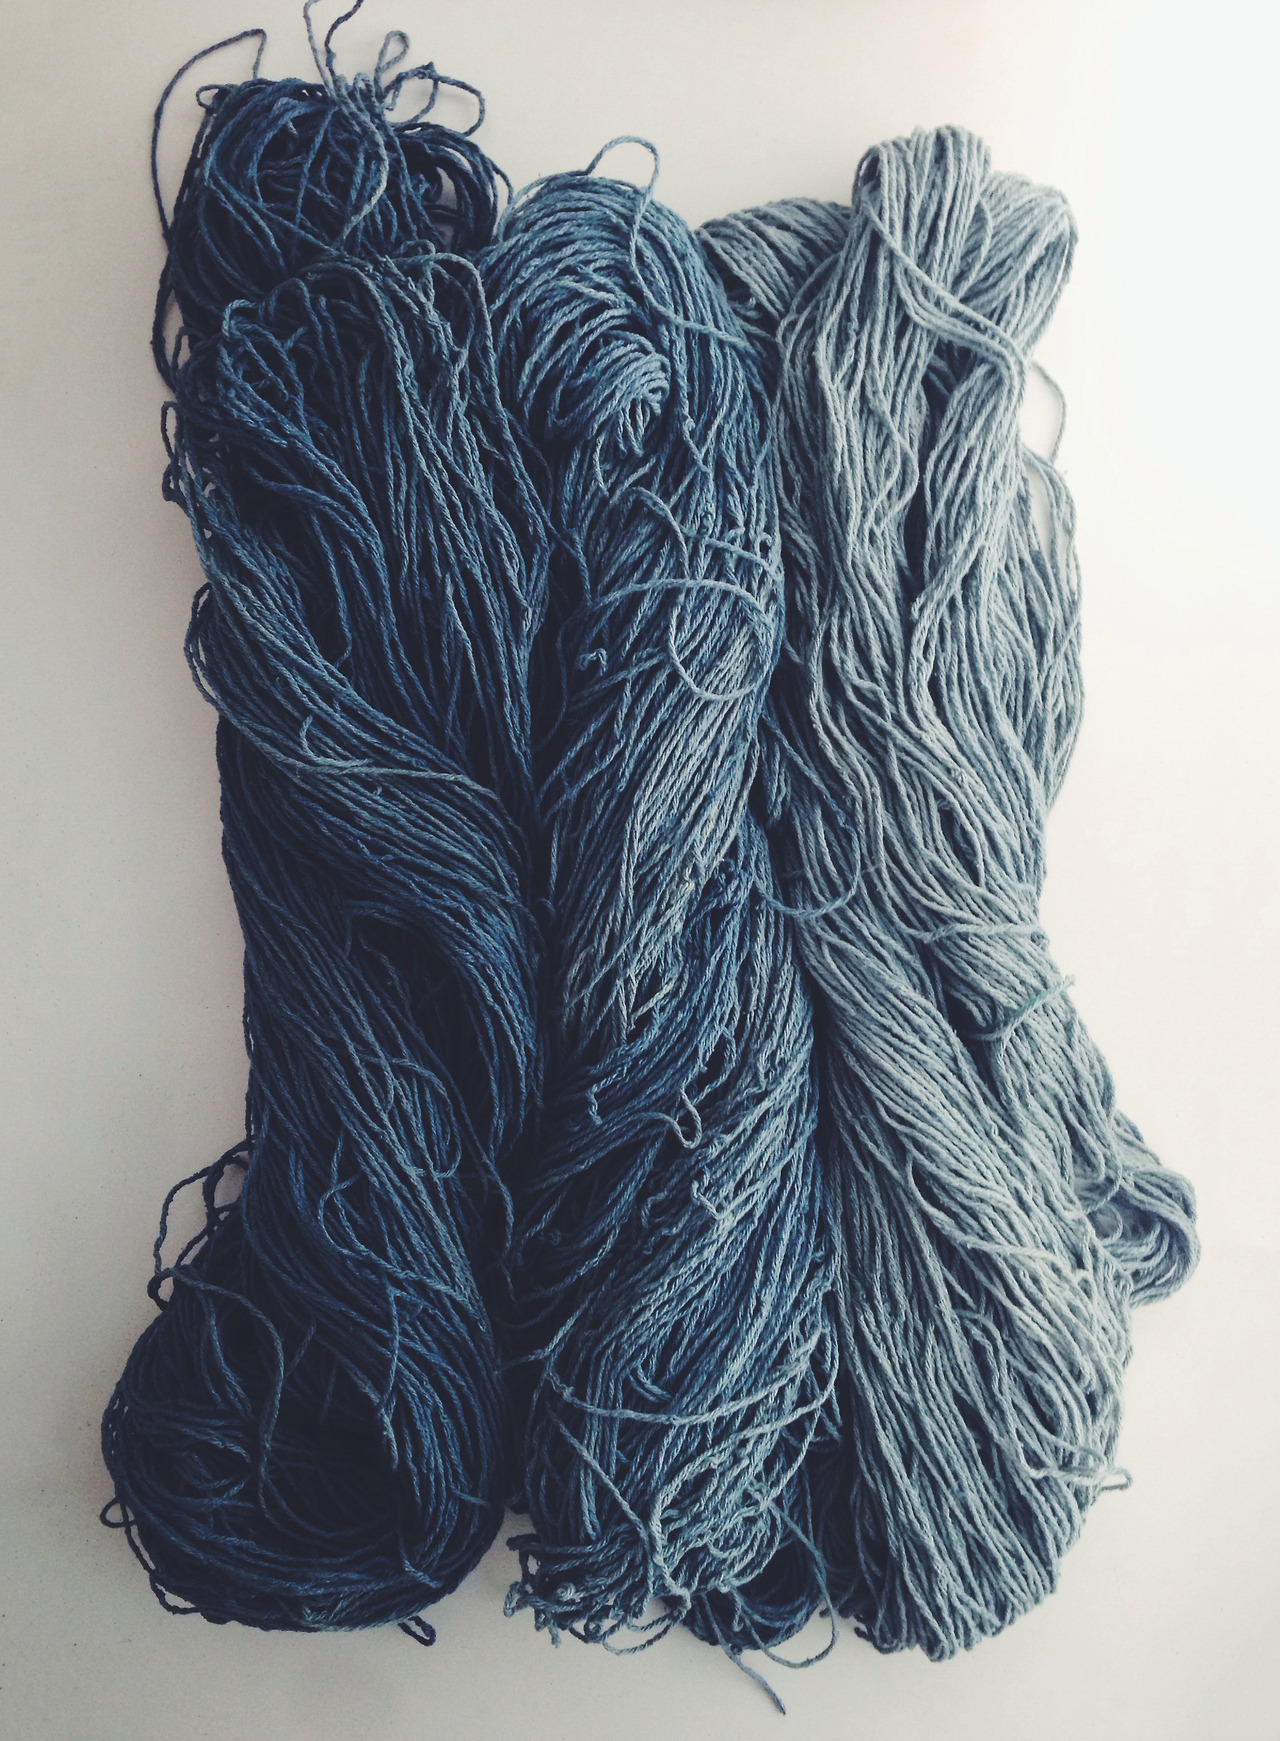 hand dyed indigo from my recent fermentation vat.  silk noil skeins with a soft gradient